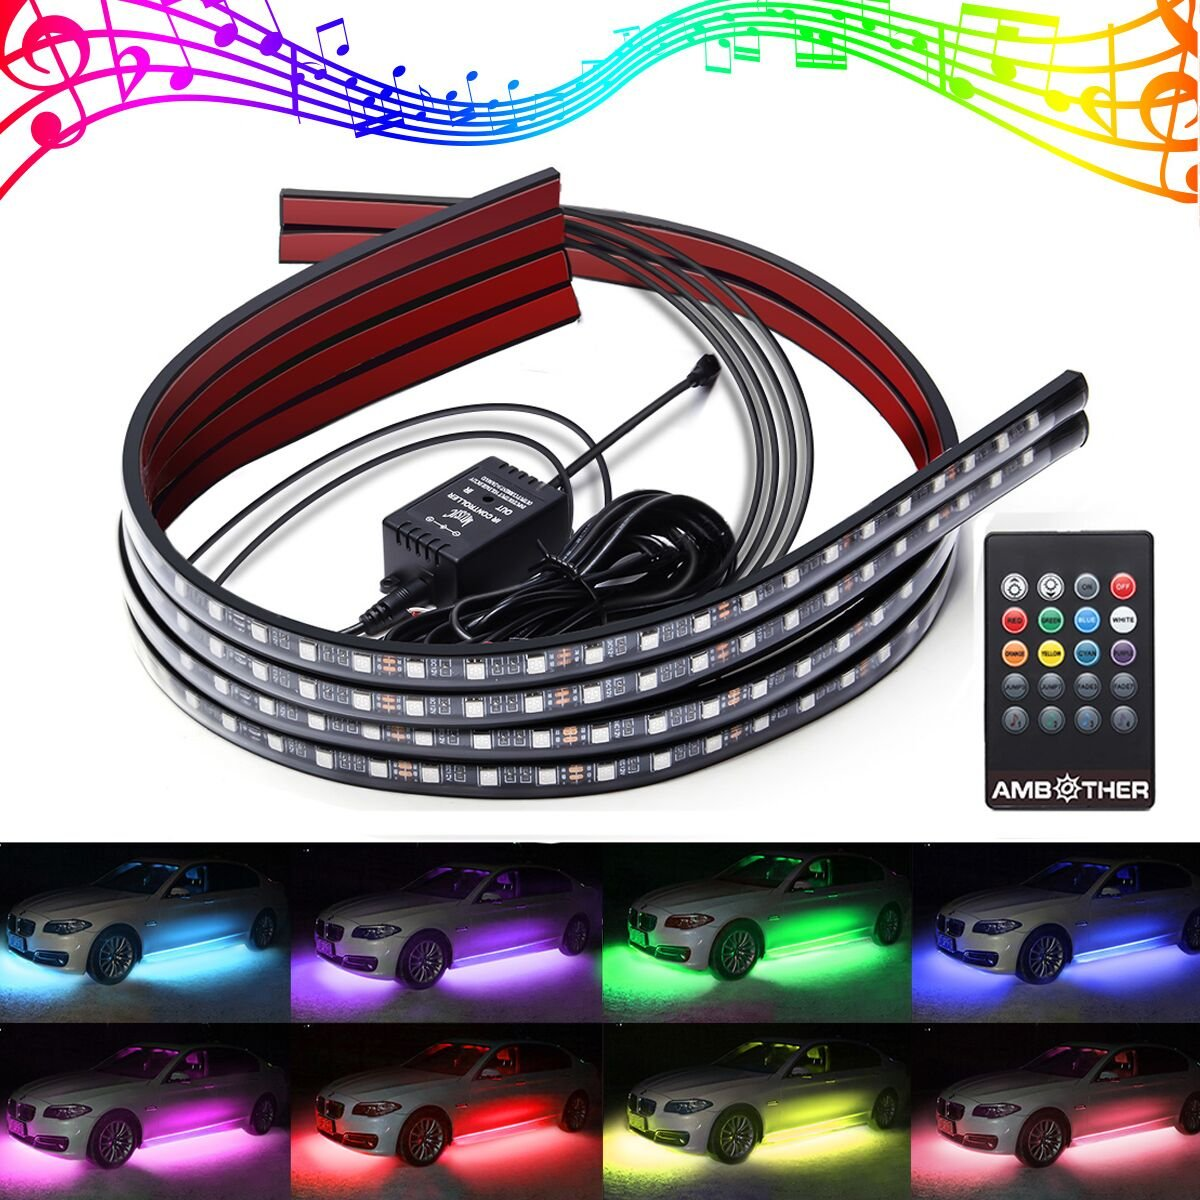 AMBOTHER 4 units 7 Colour LED Under Car Neon Exterior/Interior Light Strips DC 12 V Wireless RGB LED Strips under Car Lamp Lighting Atmosphere Decorative Lamp with Remote Control